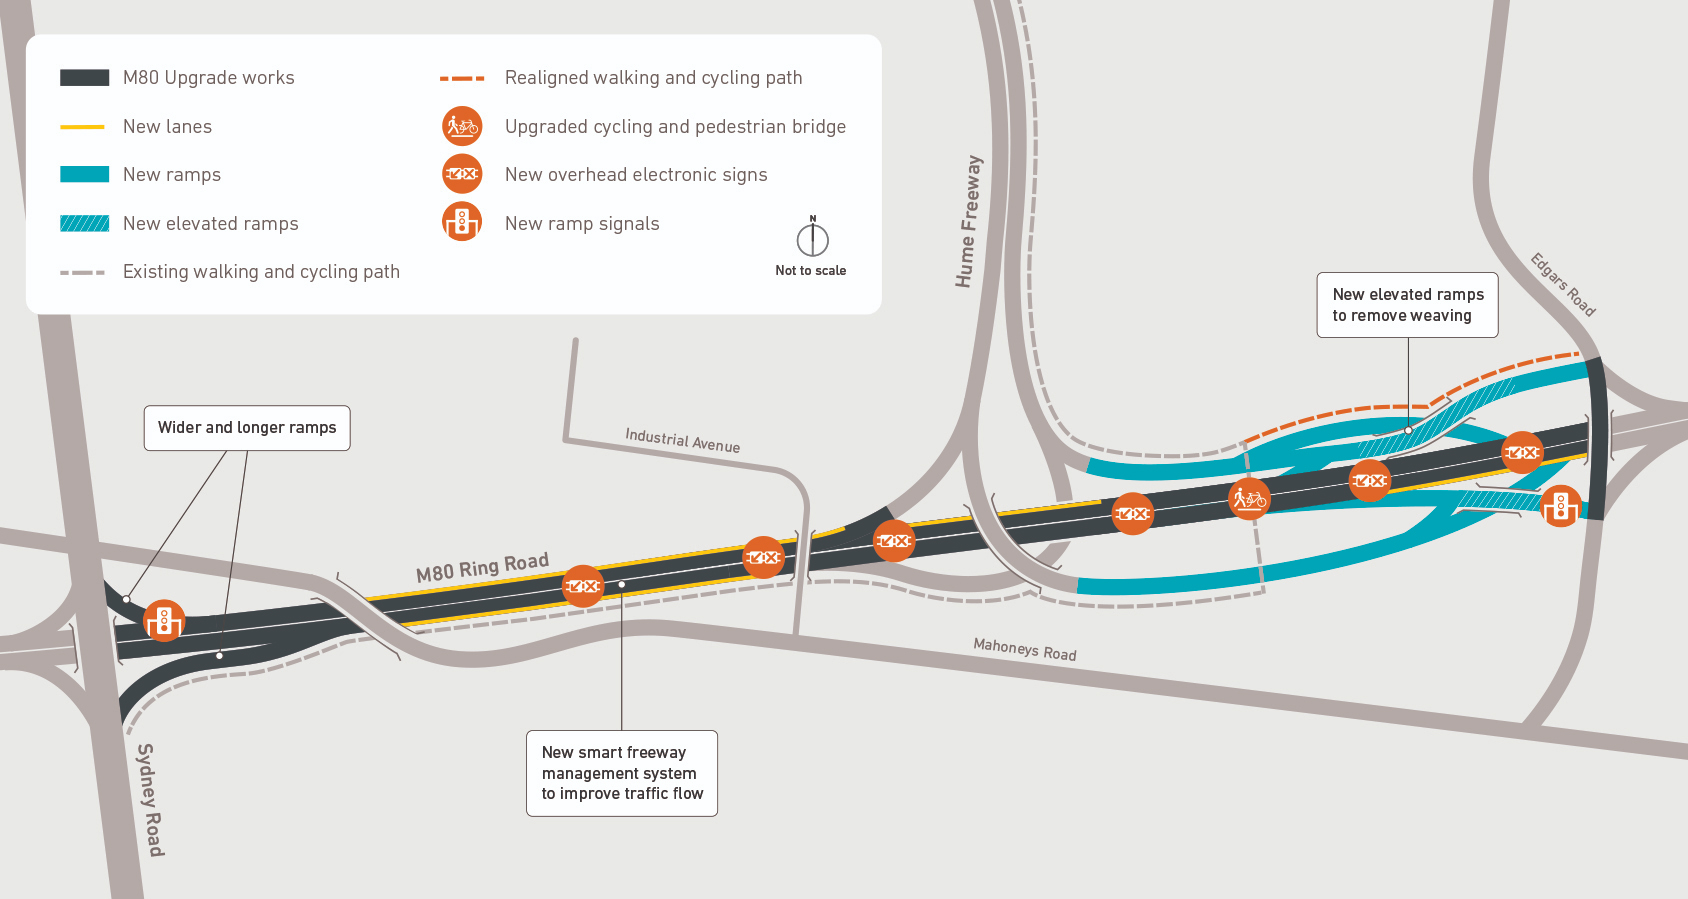 Map showing the upgrades to the M80 between Sydney and Edgars roads including the new lanes, ramps, upgraded walking and cycling path and overhead electronic signs.